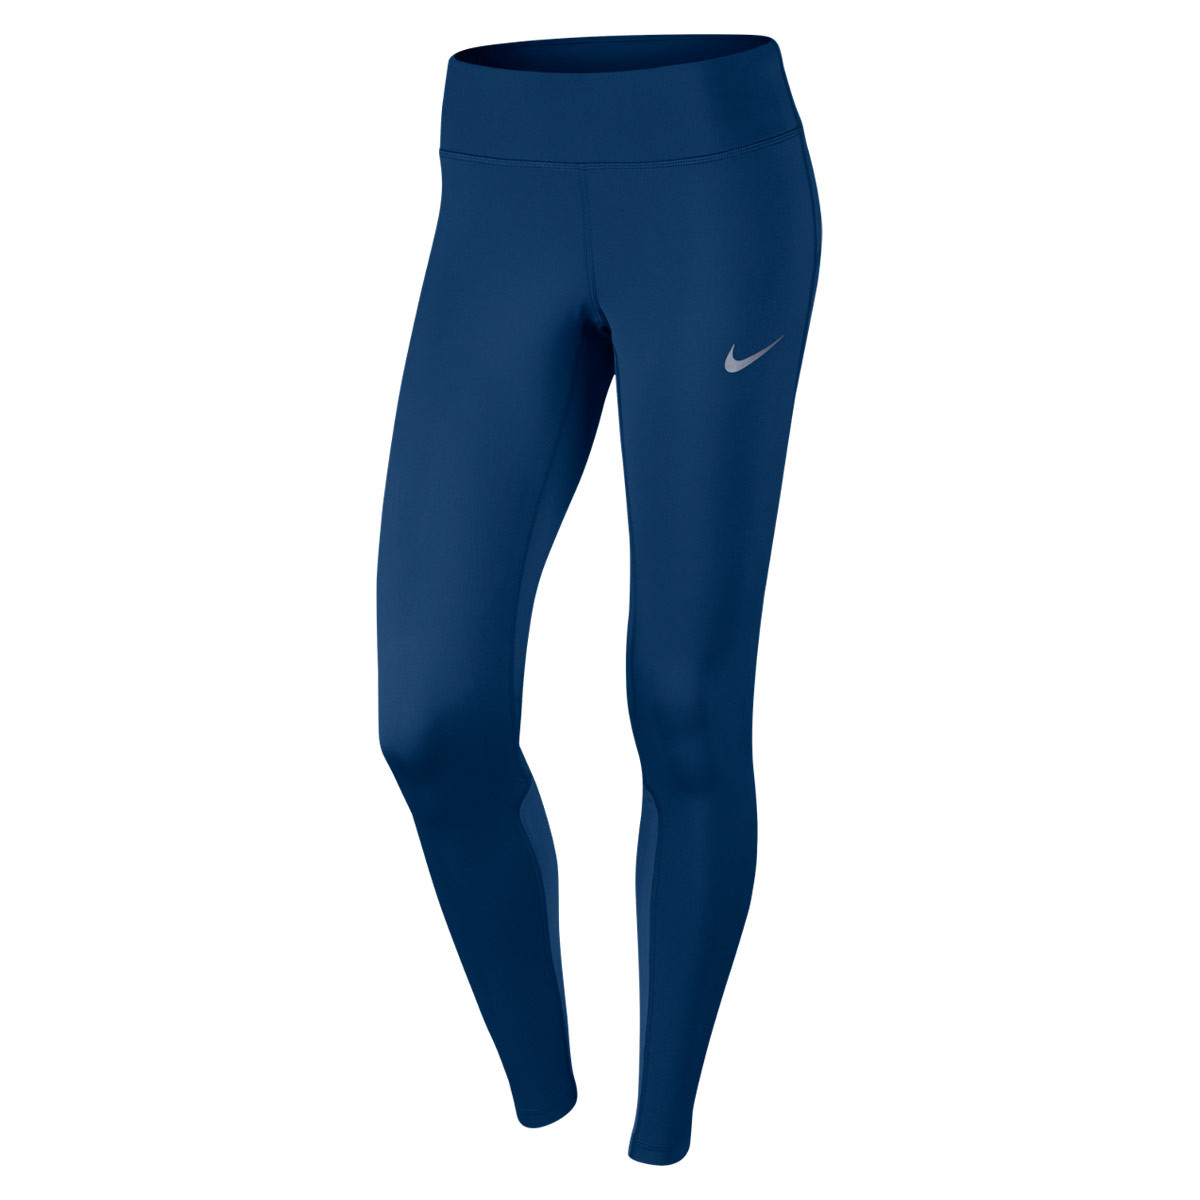 Nike Power Epic Running Tight - Running trousers for Women - Blue ... 635ad38f9d20